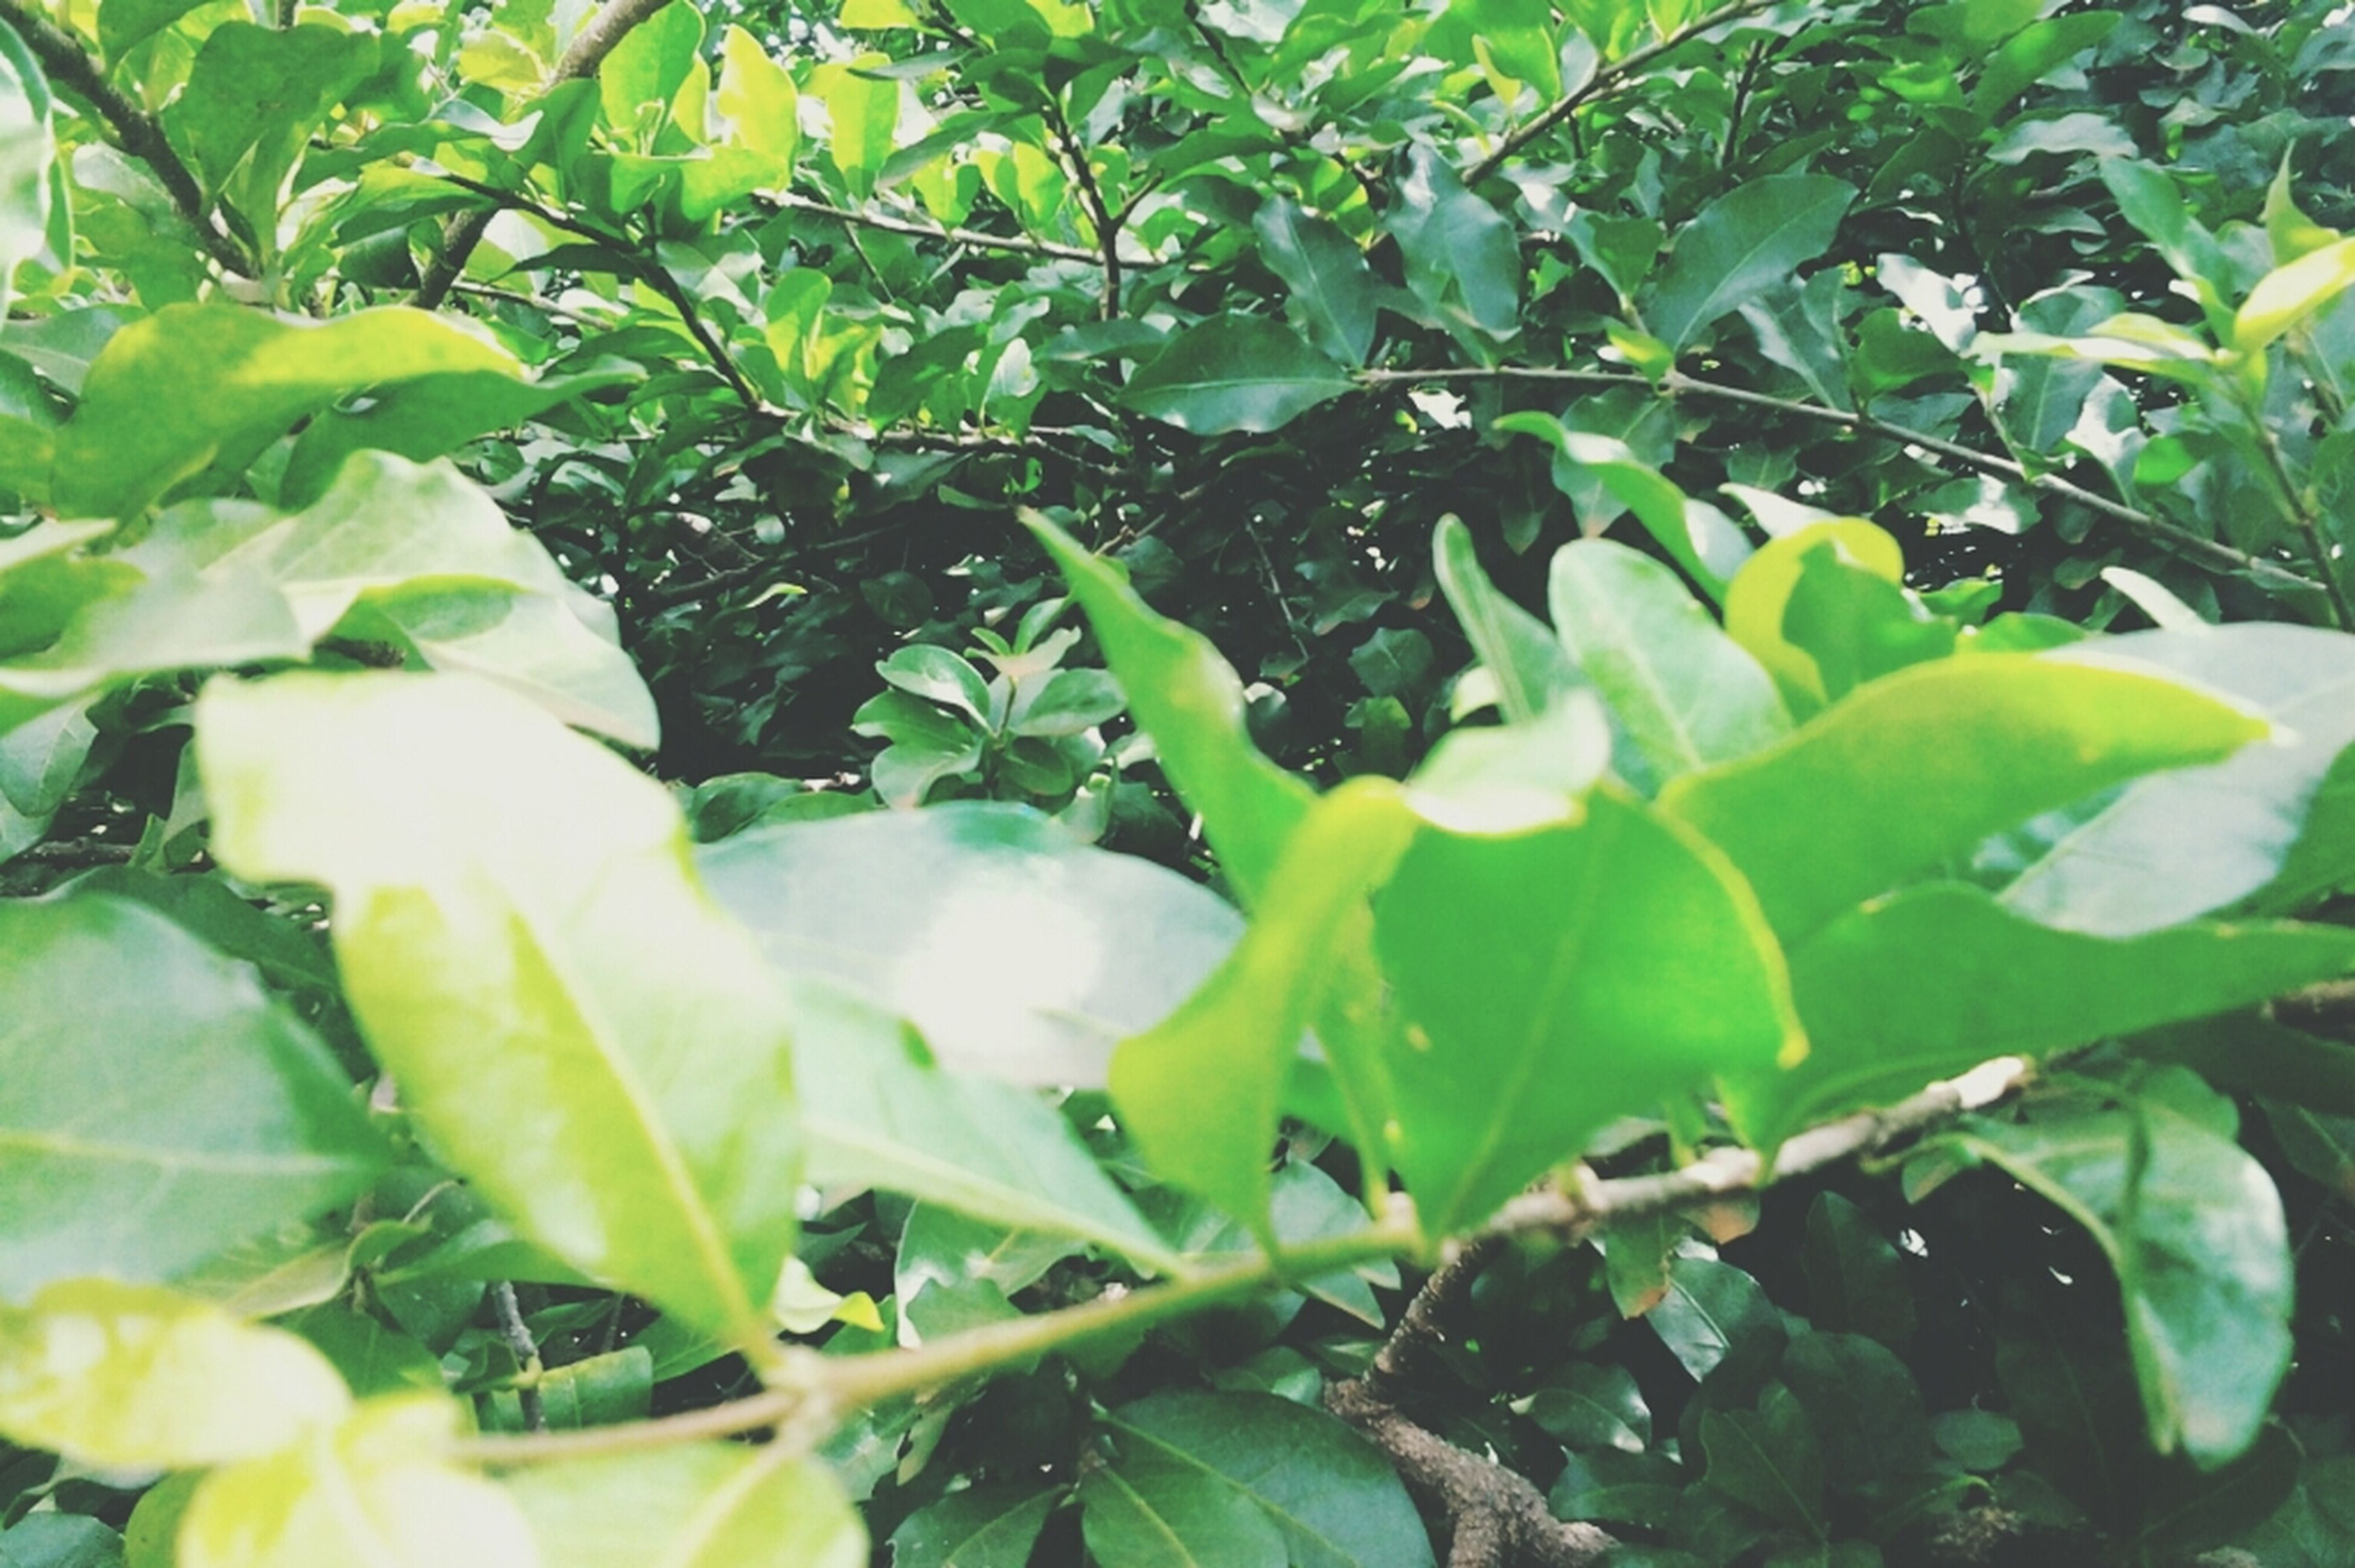 leaf, green color, growth, plant, nature, beauty in nature, freshness, tree, close-up, branch, green, full frame, lush foliage, tranquility, leaves, growing, day, outdoors, high angle view, no people